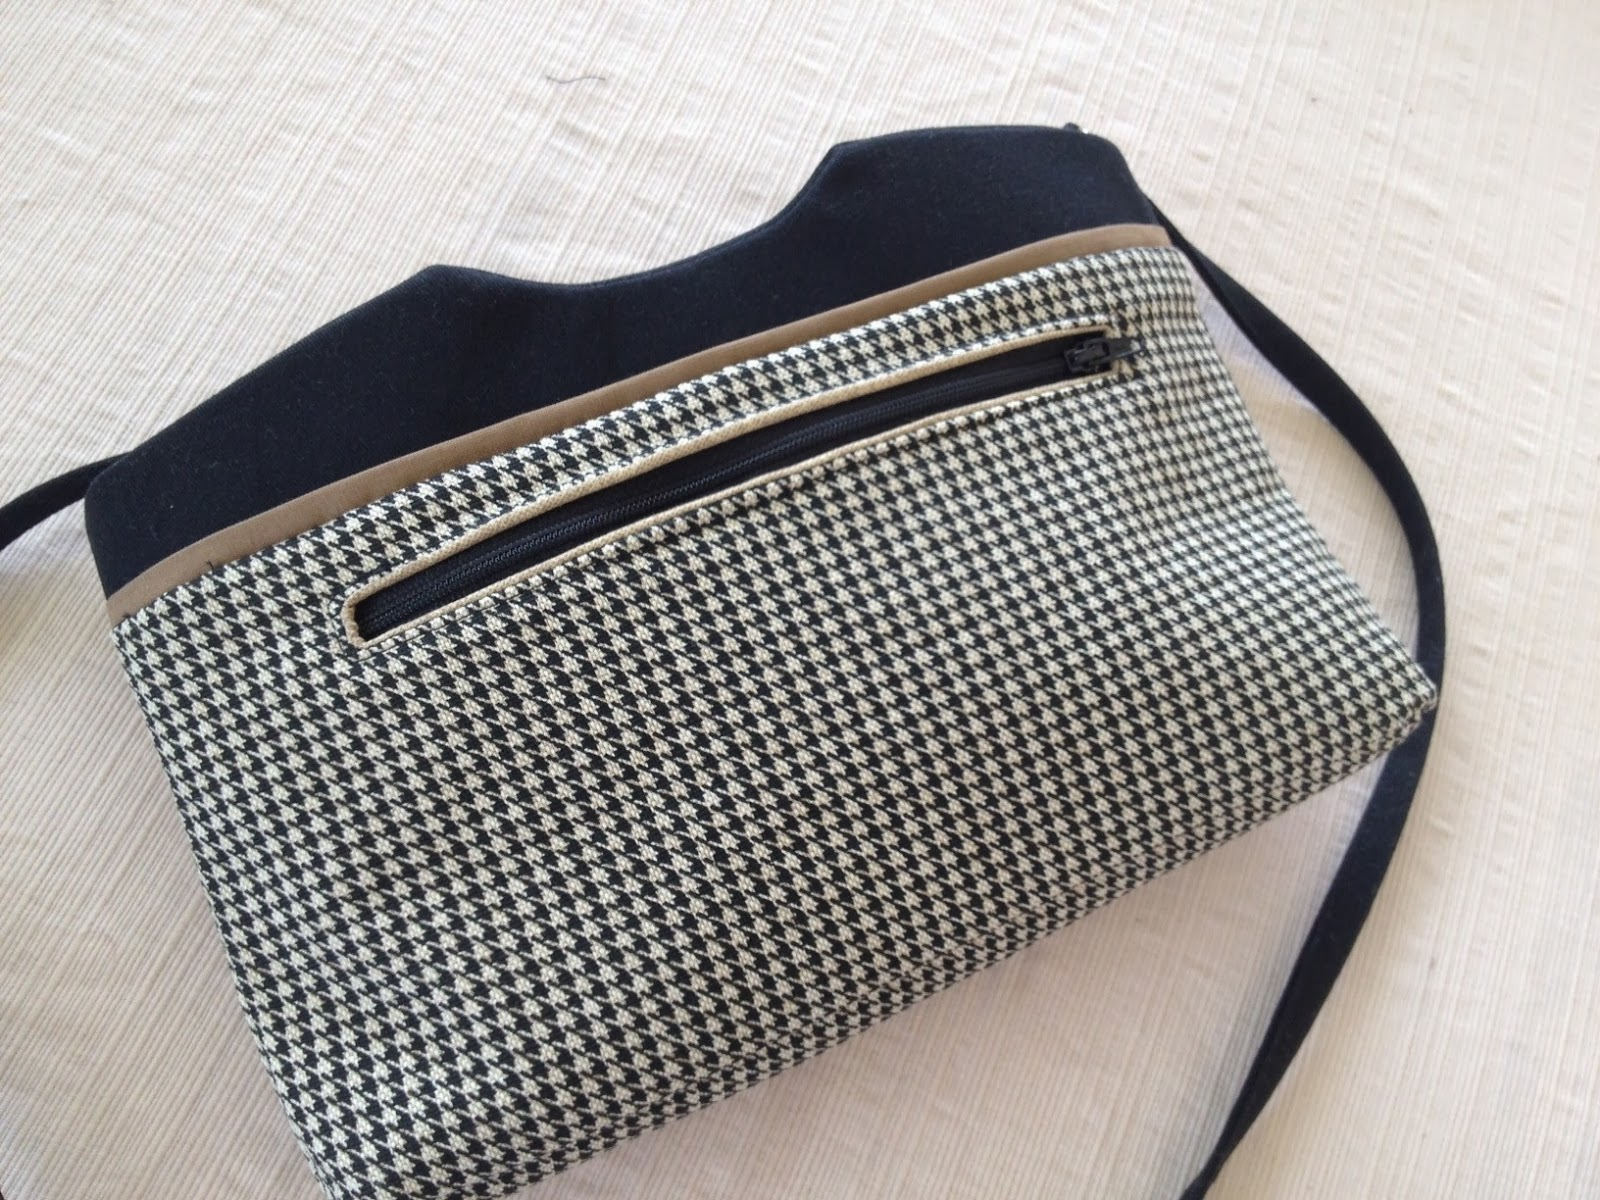 Normas bag boutique chandelier swing bag i used some black twill and a beige and black houndstooth home dec weight fabric the size of this bag is great for when you want to look elegant and sleek aloadofball Choice Image